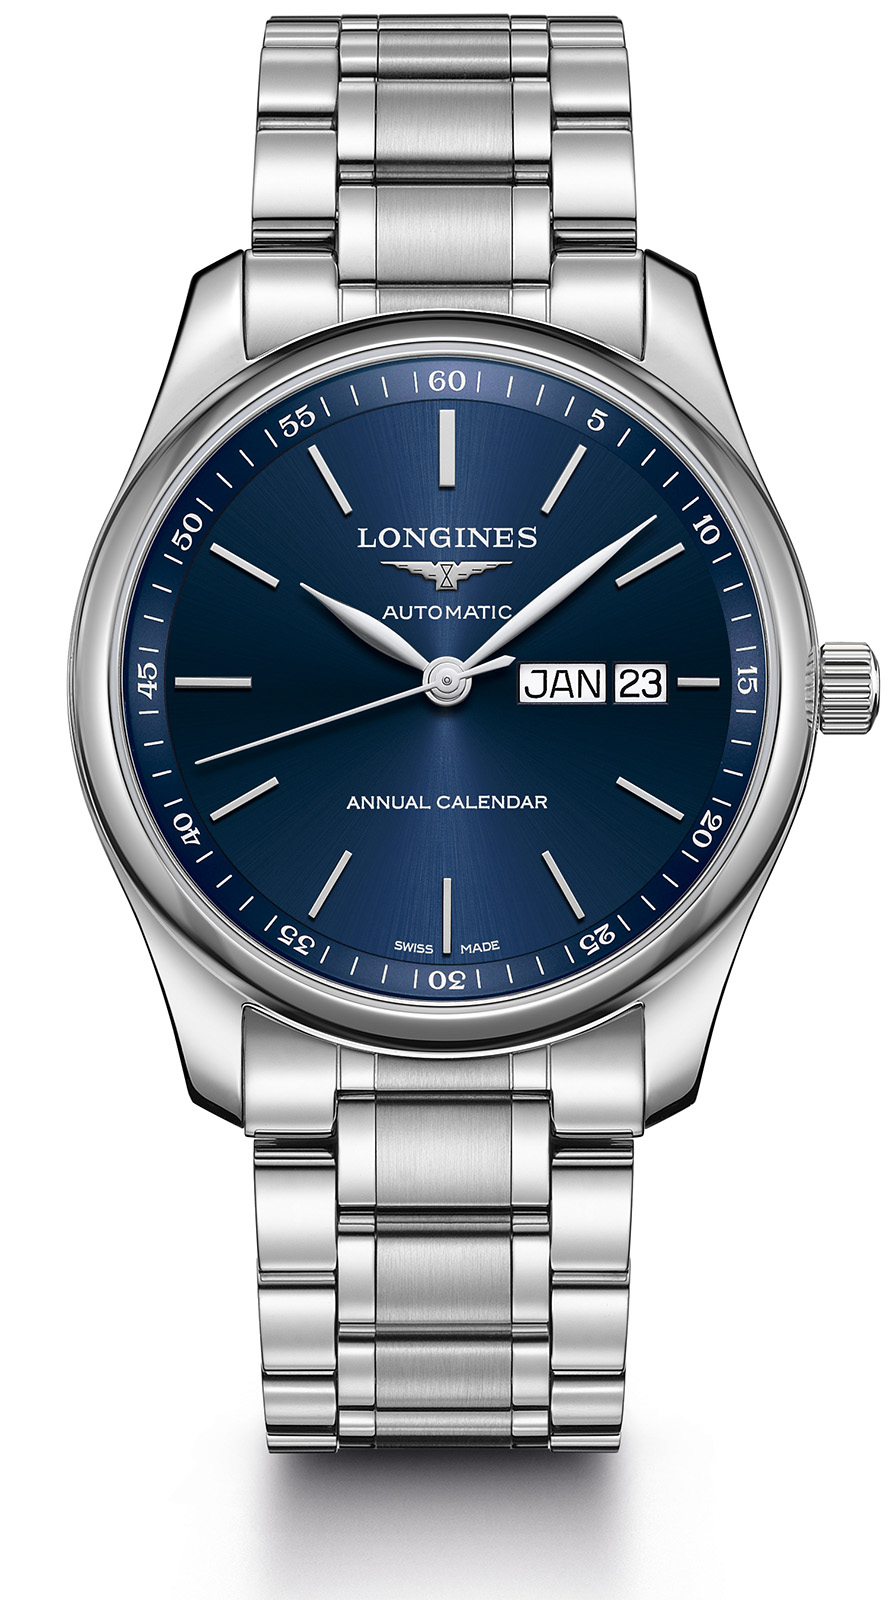 The Longines Master Collection Annual Calendar L2.910.4.92.6